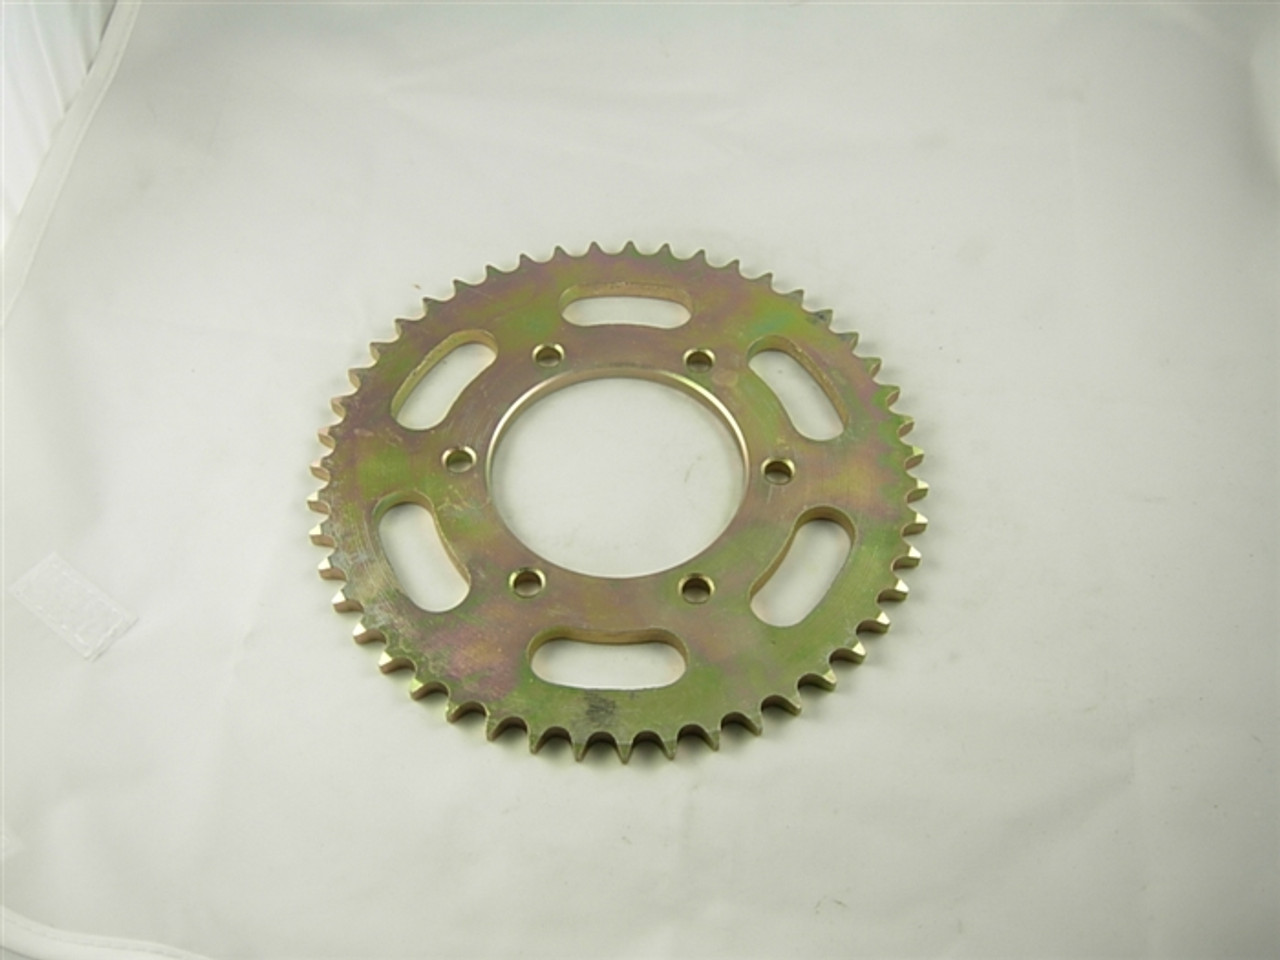 CHAIN SPROCKET 10320-A18-14